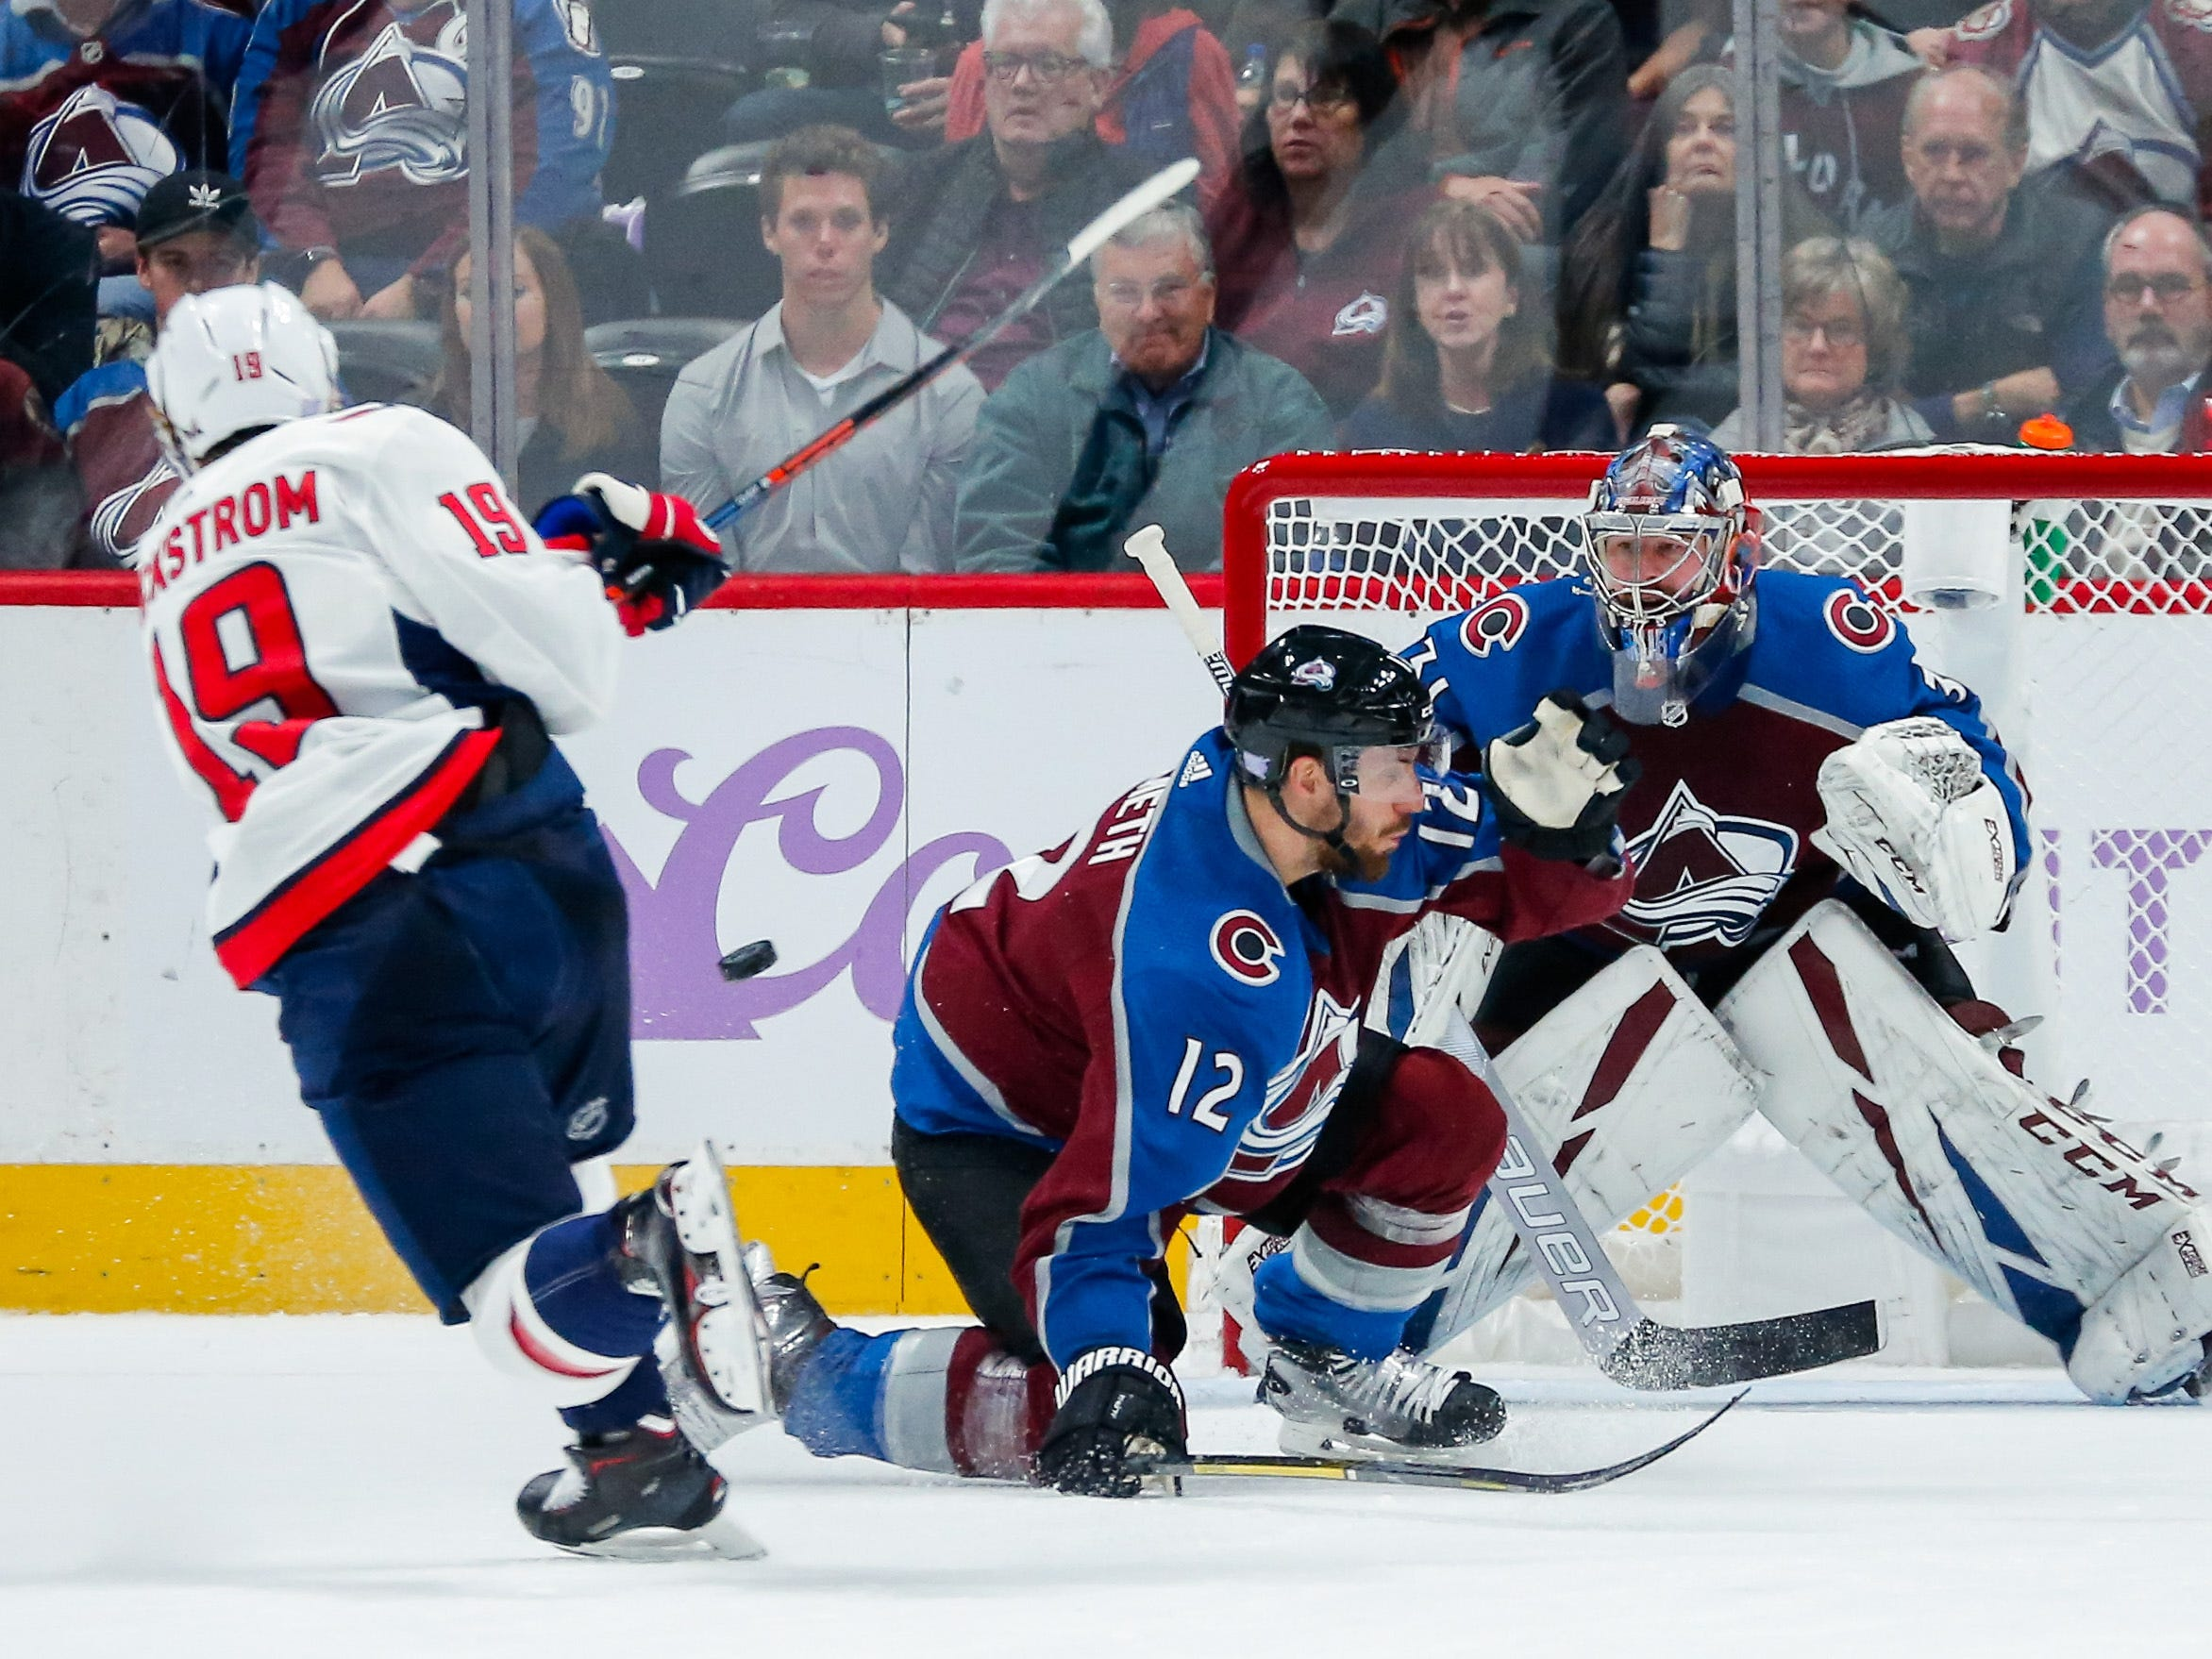 Nov. 16: Washington center Nicklas Backstrom scores against former Capitals goaltender Philipp Grubauer in overtime for a 3-2 win against the Colorado Avalanche.